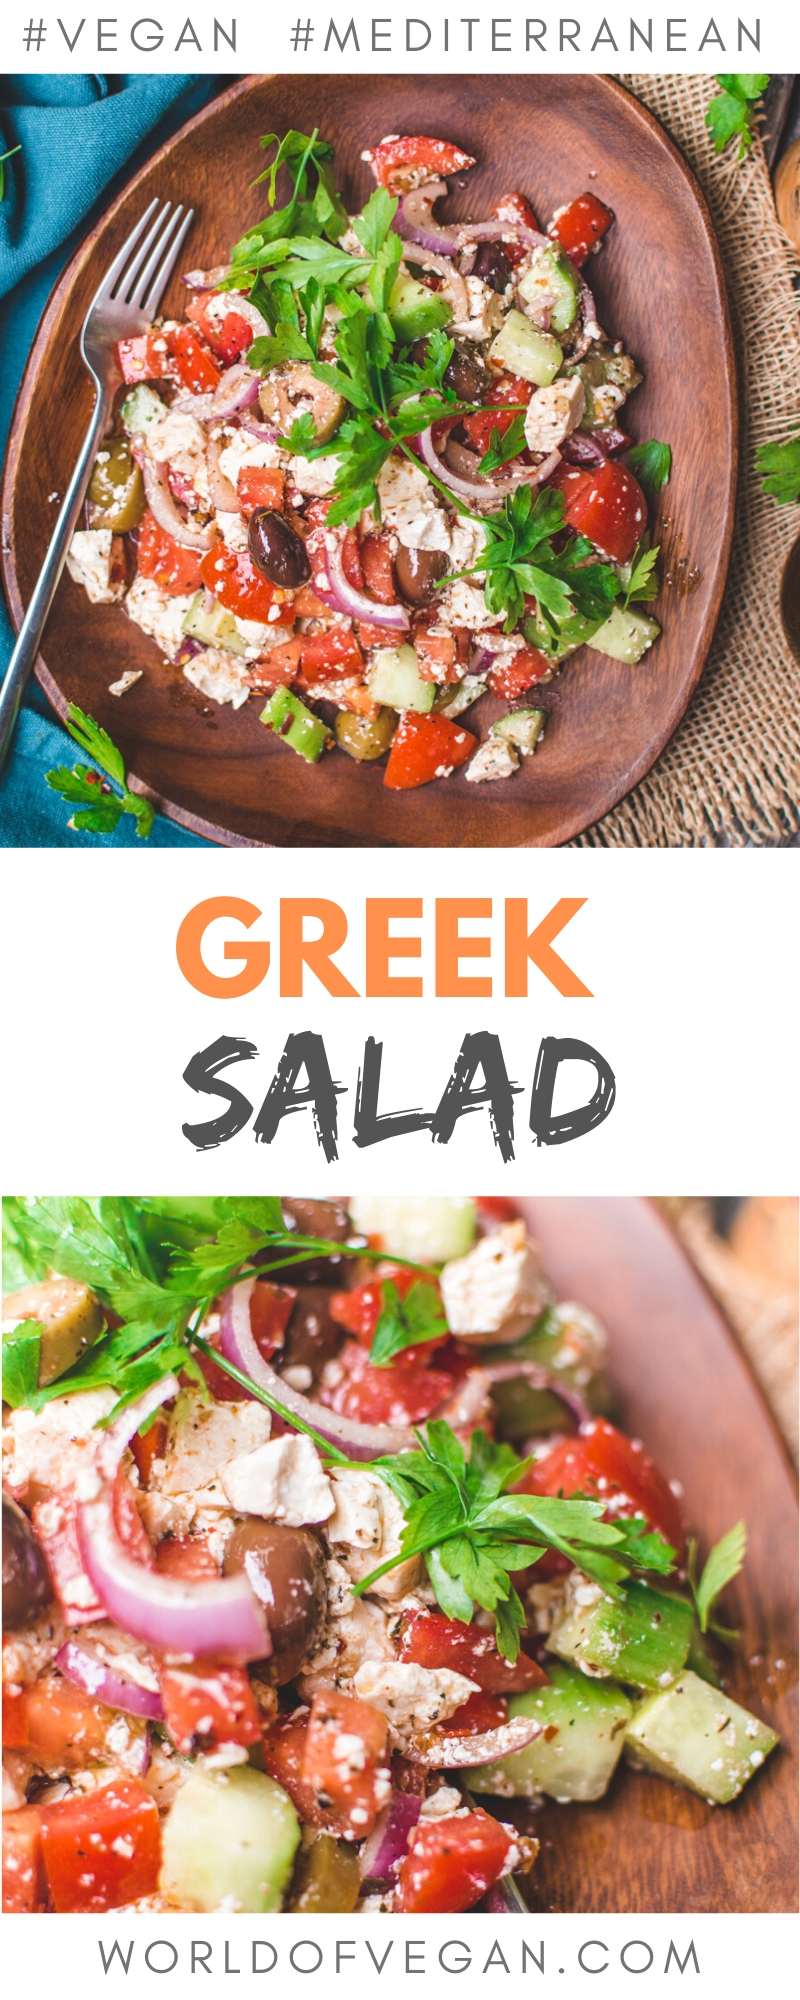 Vegan Greek Salad with Mediterranean Tofu | World of Vegan | #greek #salad #feta #tofu #marinated #mediterranean #worldofvegan